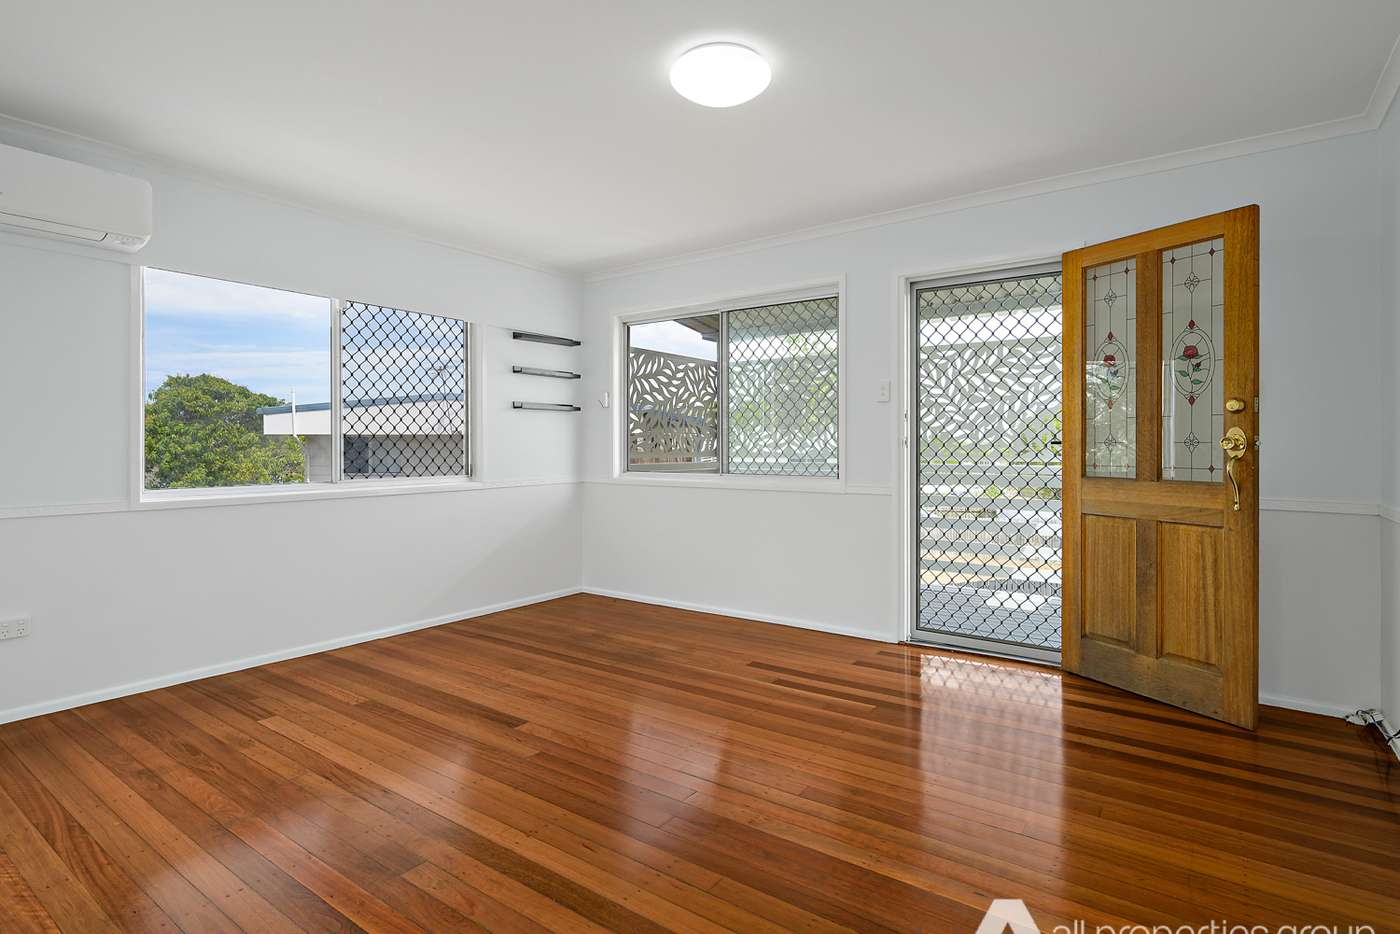 Fifth view of Homely house listing, 18 Hakea Street, Crestmead QLD 4132